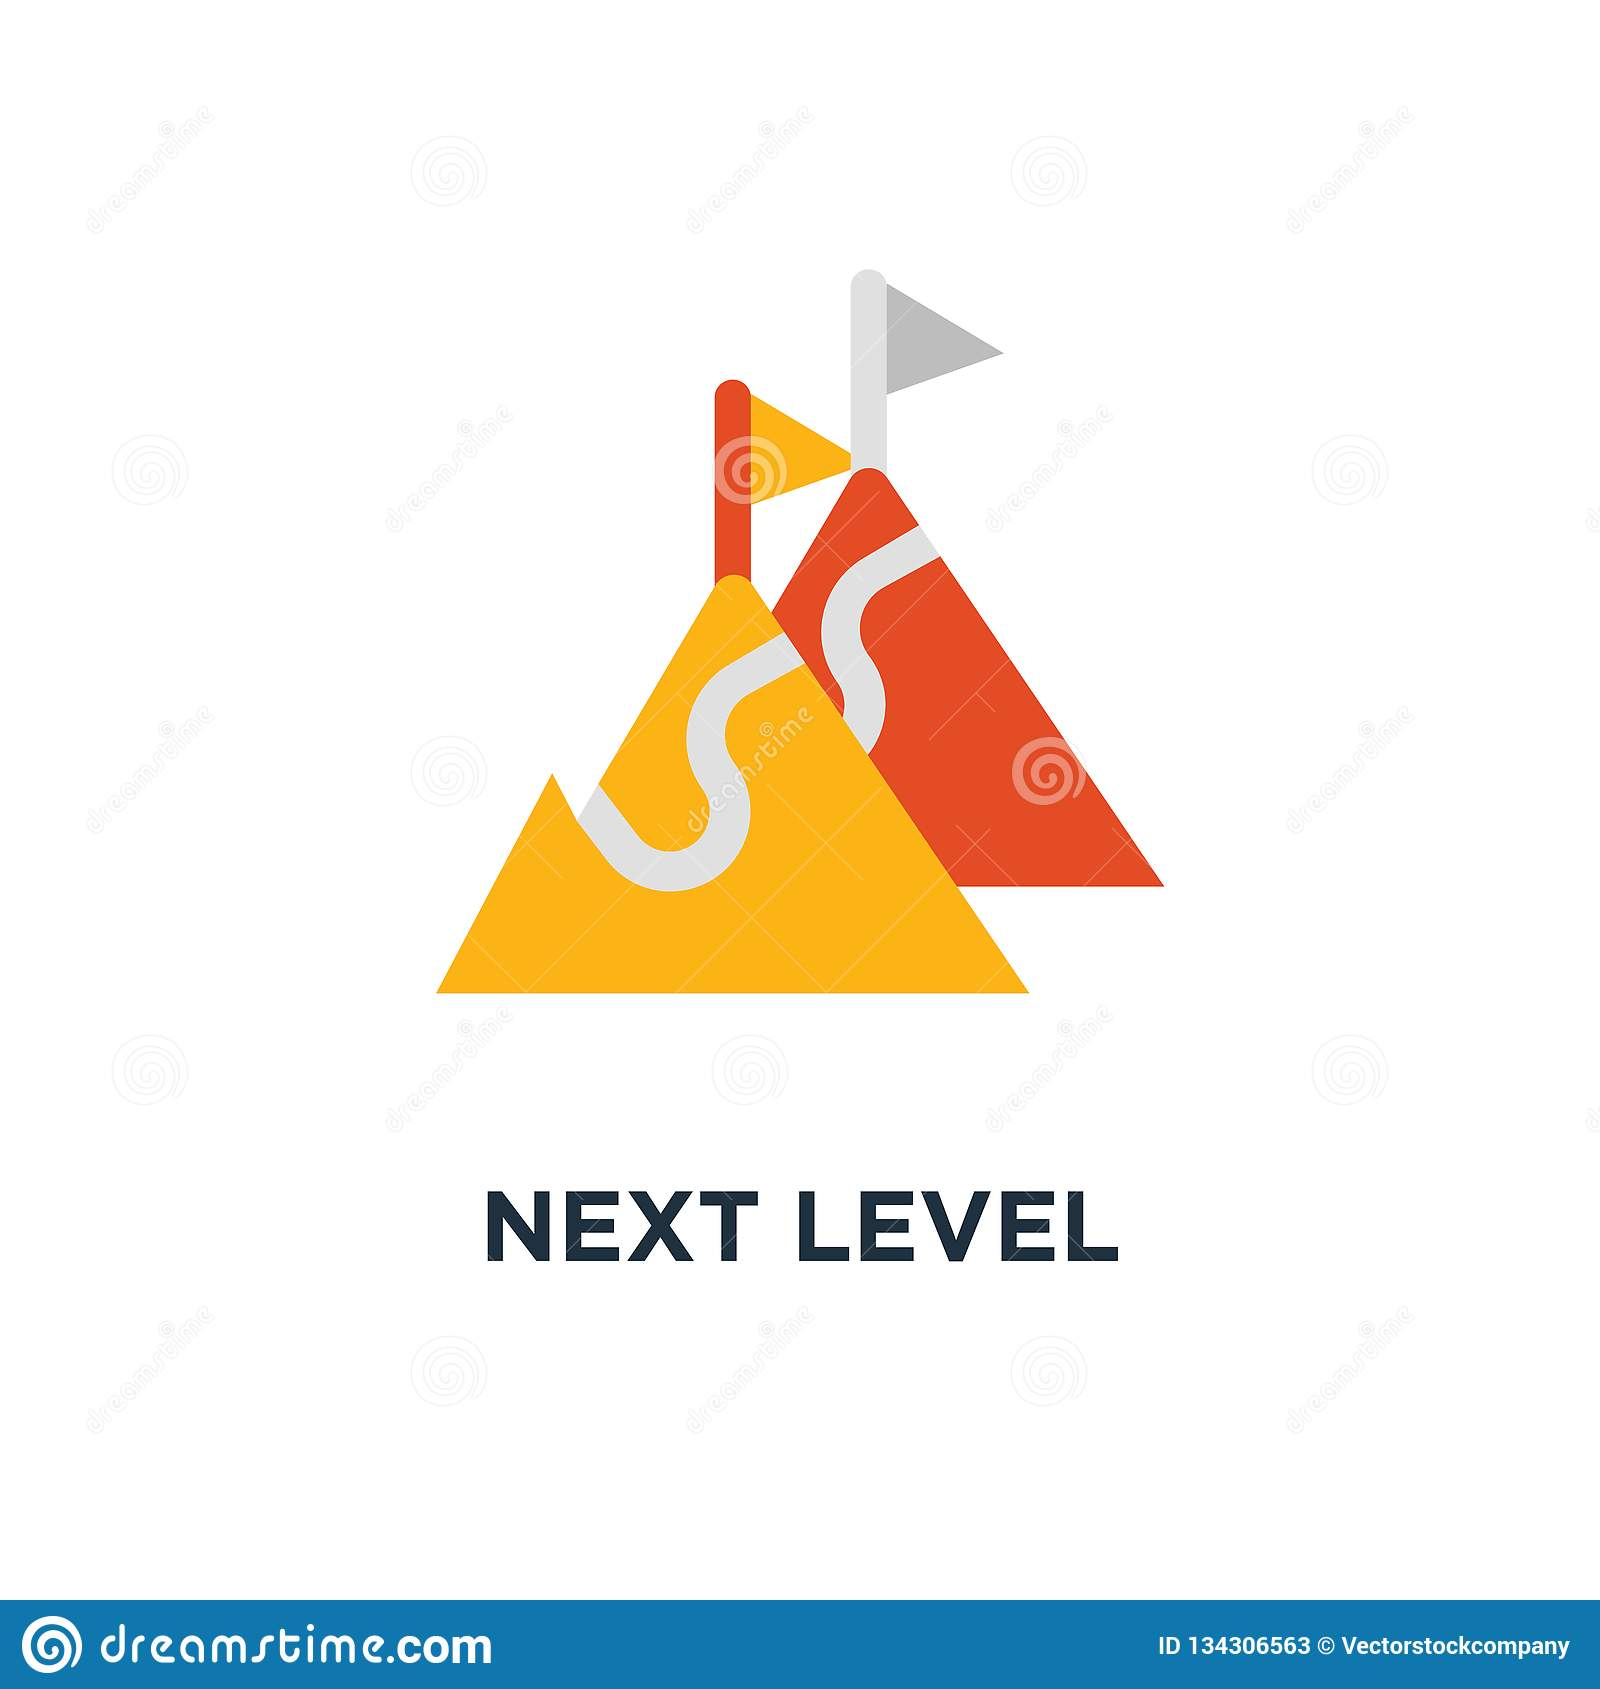 next level icon. upgrade, long term ambition, future aspiration concept symbol design, way to success, reach goal, higher and